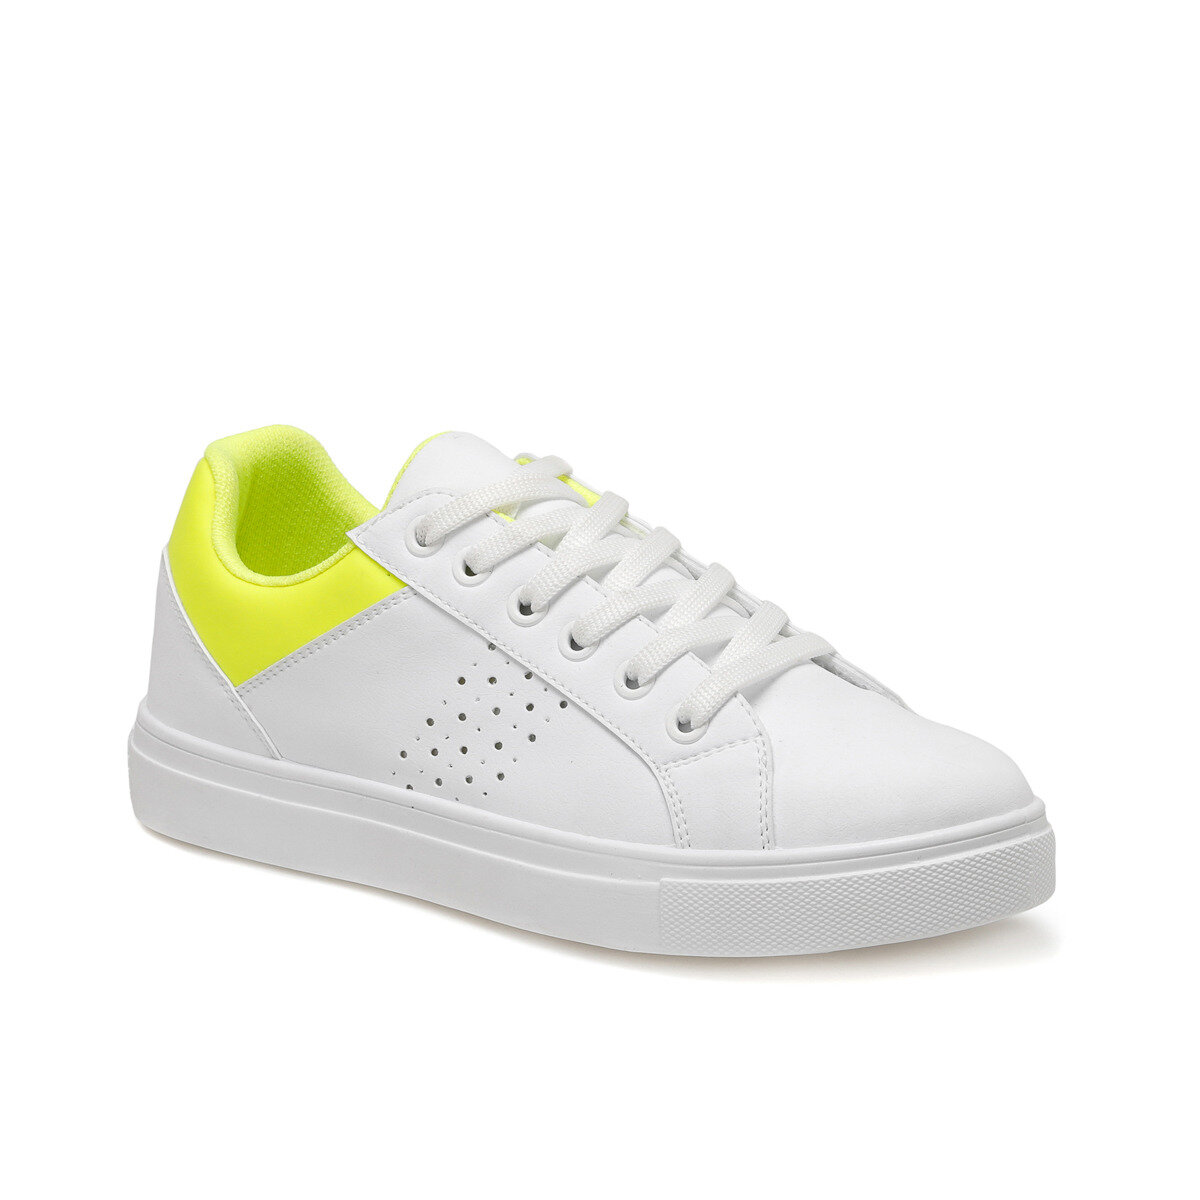 FLO CS20018 Neon Yellow Women 'S Sneaker Shoes Art Bella